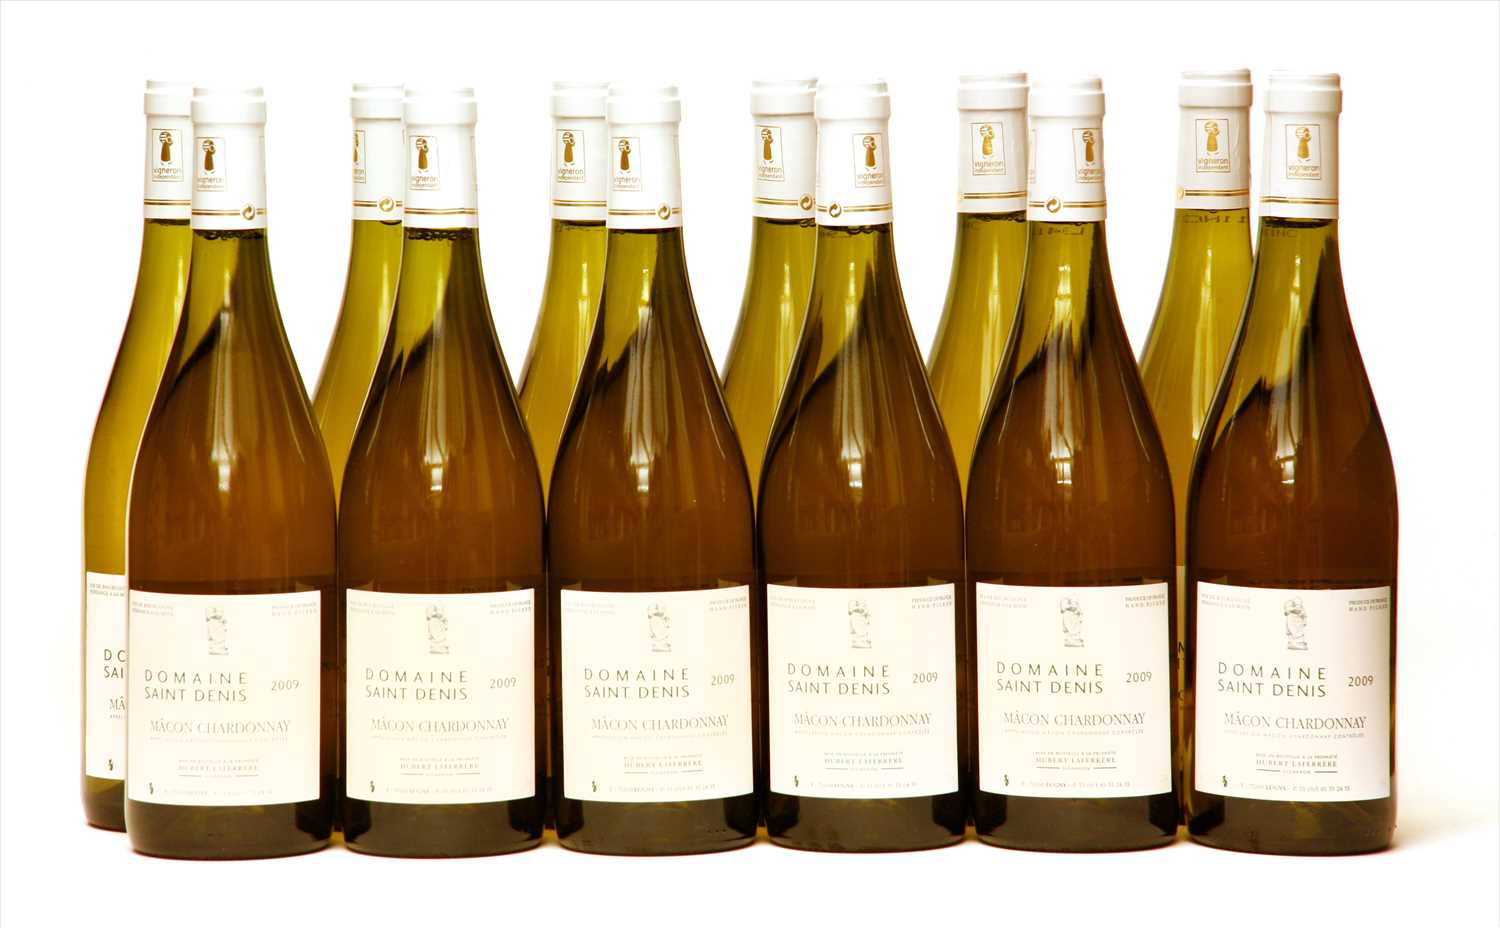 Lot 20-Domaine Saint Denis, Mâcon Chardonnay, 2009, twelve bottles (boxed)